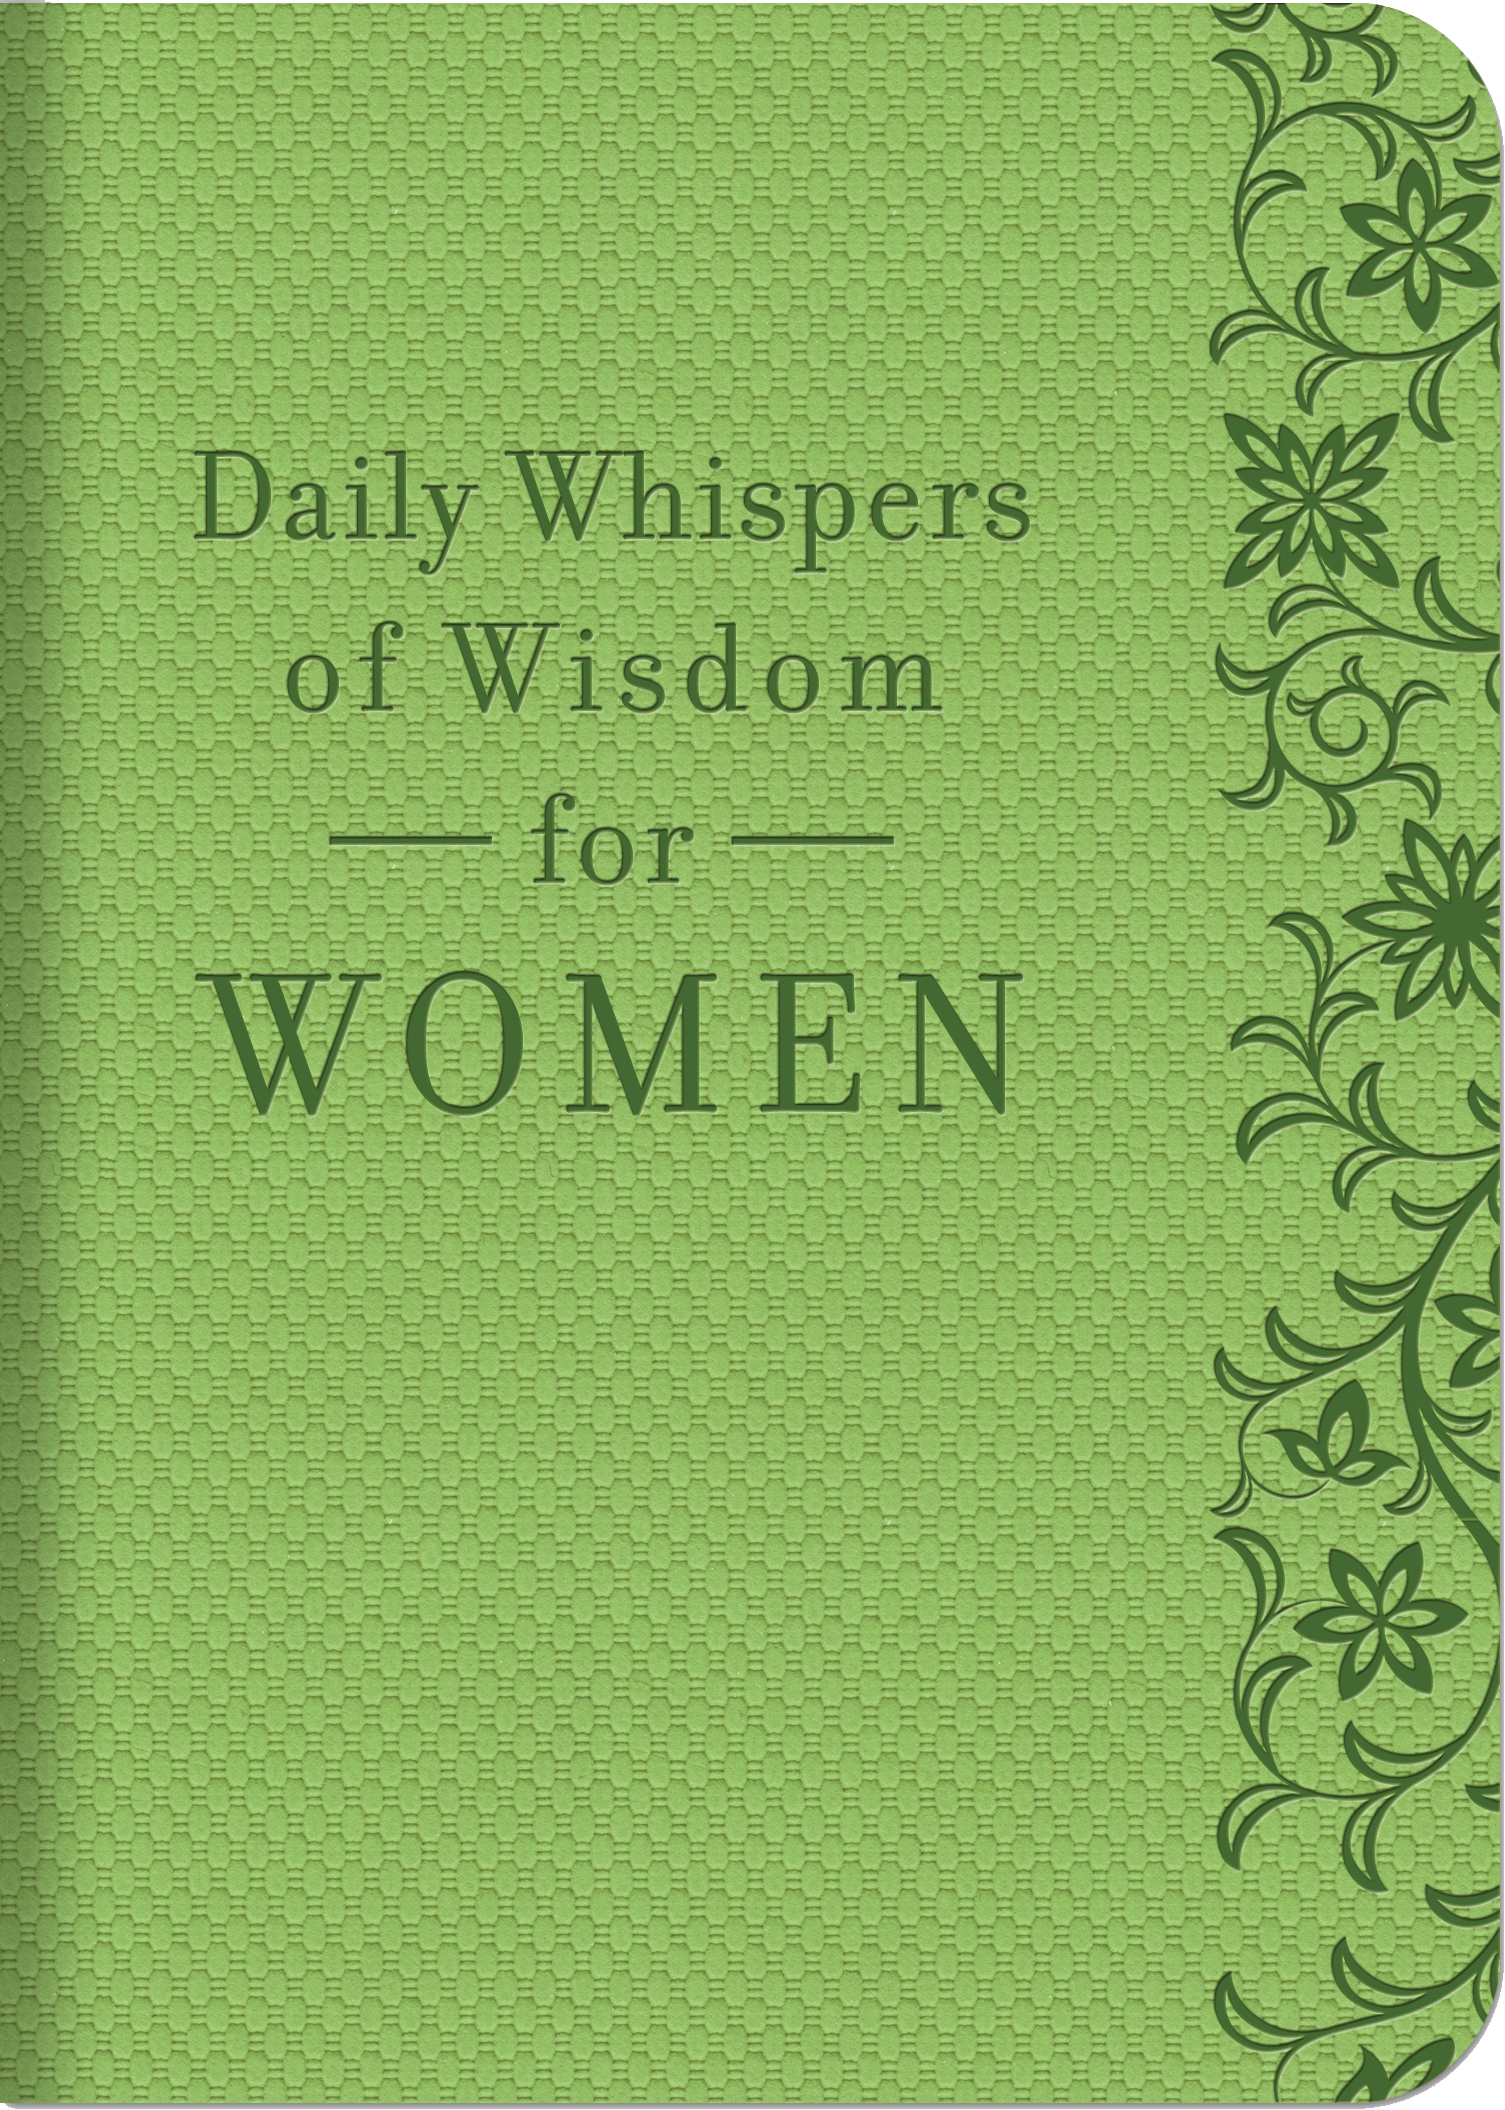 Daily Whispers of Wisdom for Women By: Barbour Publishing